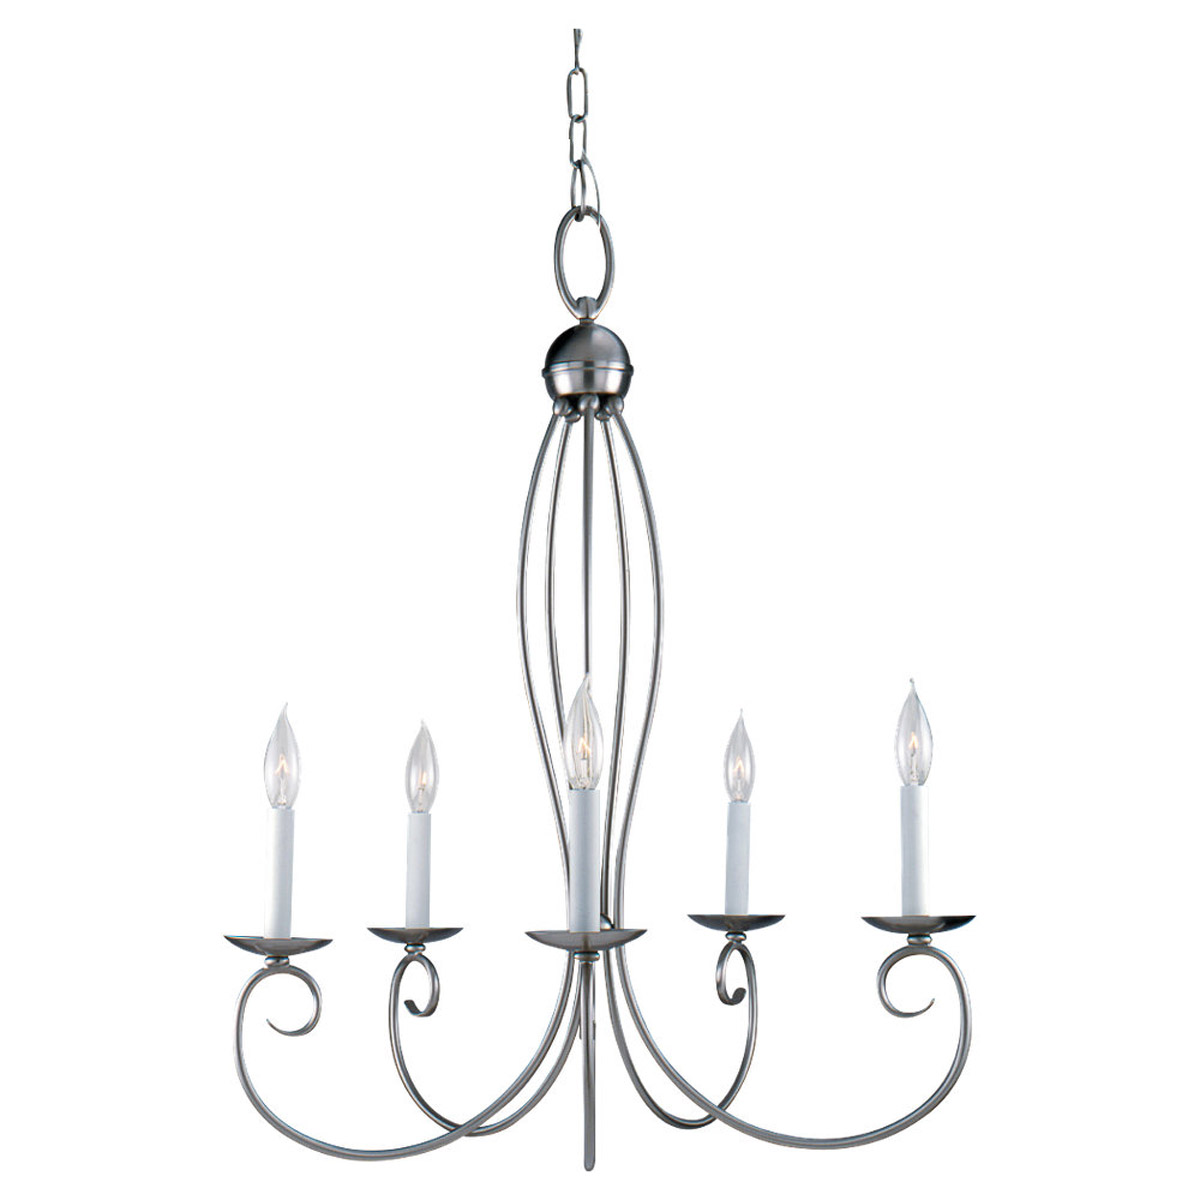 Sea Gull Lighting Pemberton 5 Light Chandelier in Brushed Nickel 31074-962